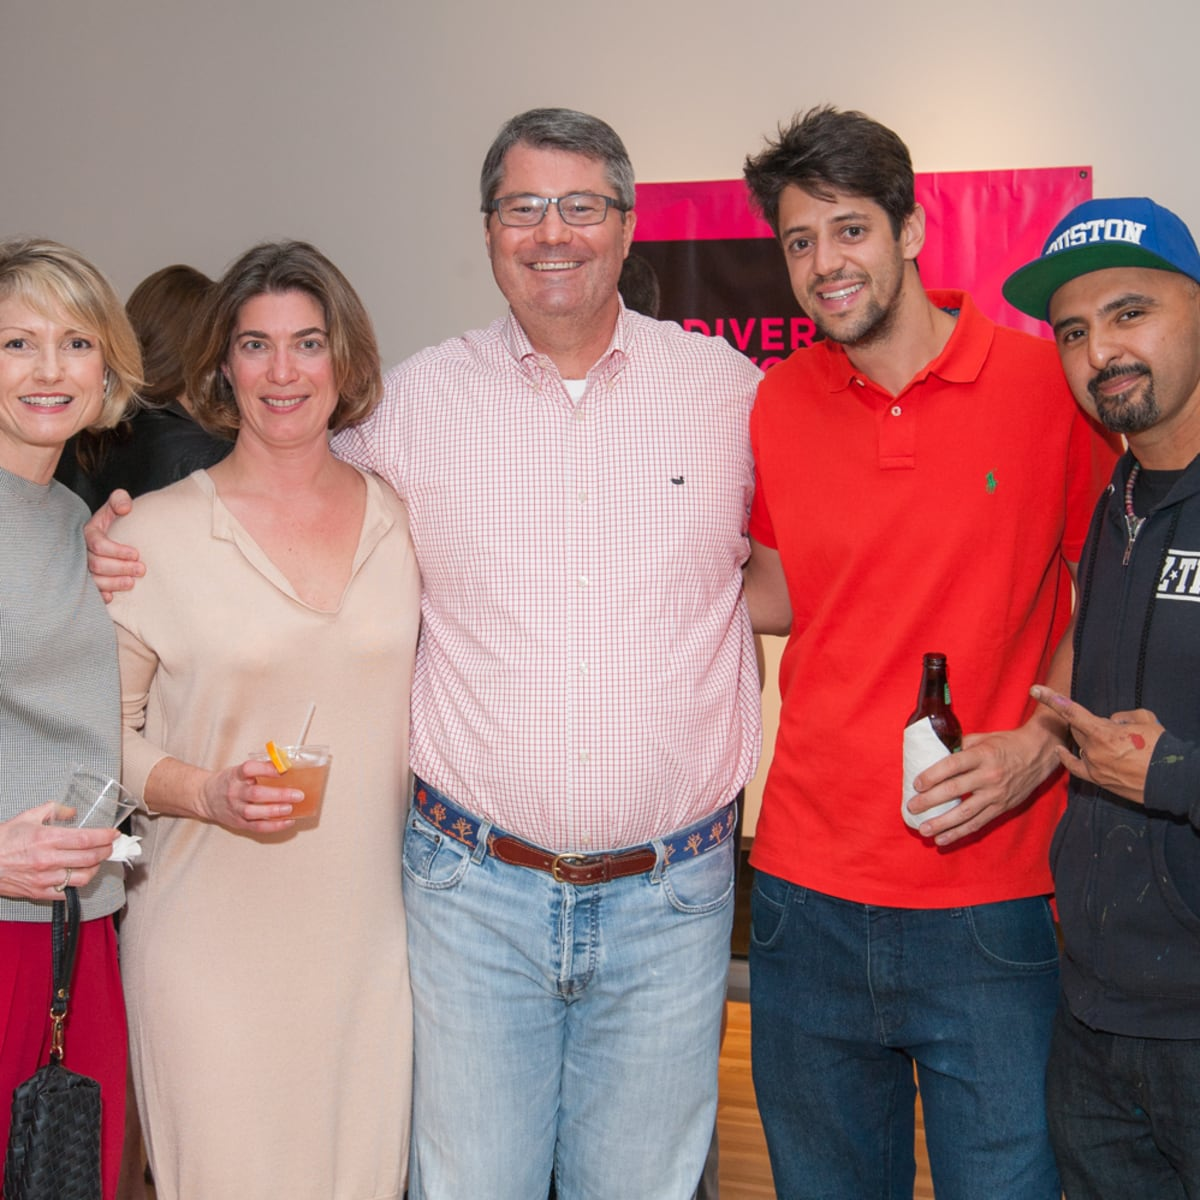 News, DiverseWorks MATCH party, Dec. 2015 Bridget Wade, Claudia Schmuckli, Patrick Wade, Fplo, Gonzo247